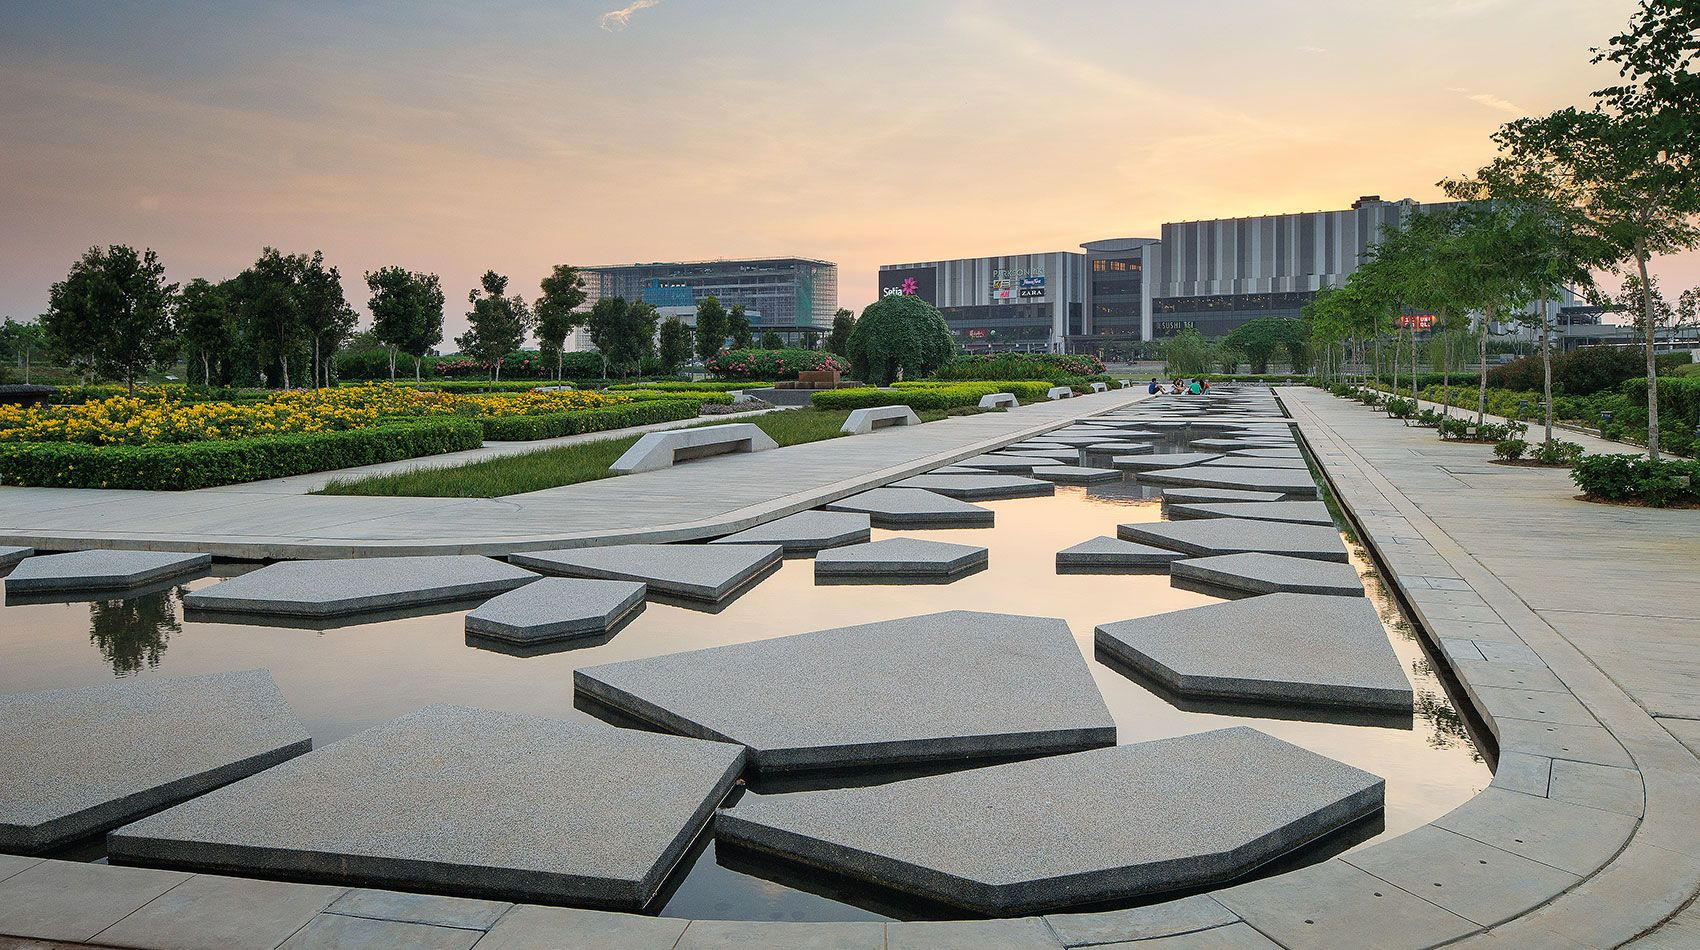 Setia City Park A Modern Urban Park Composed Of Activity Peninsulas That Float On The Surface Of The Water Commercial Landscape Design Park City Urban Park